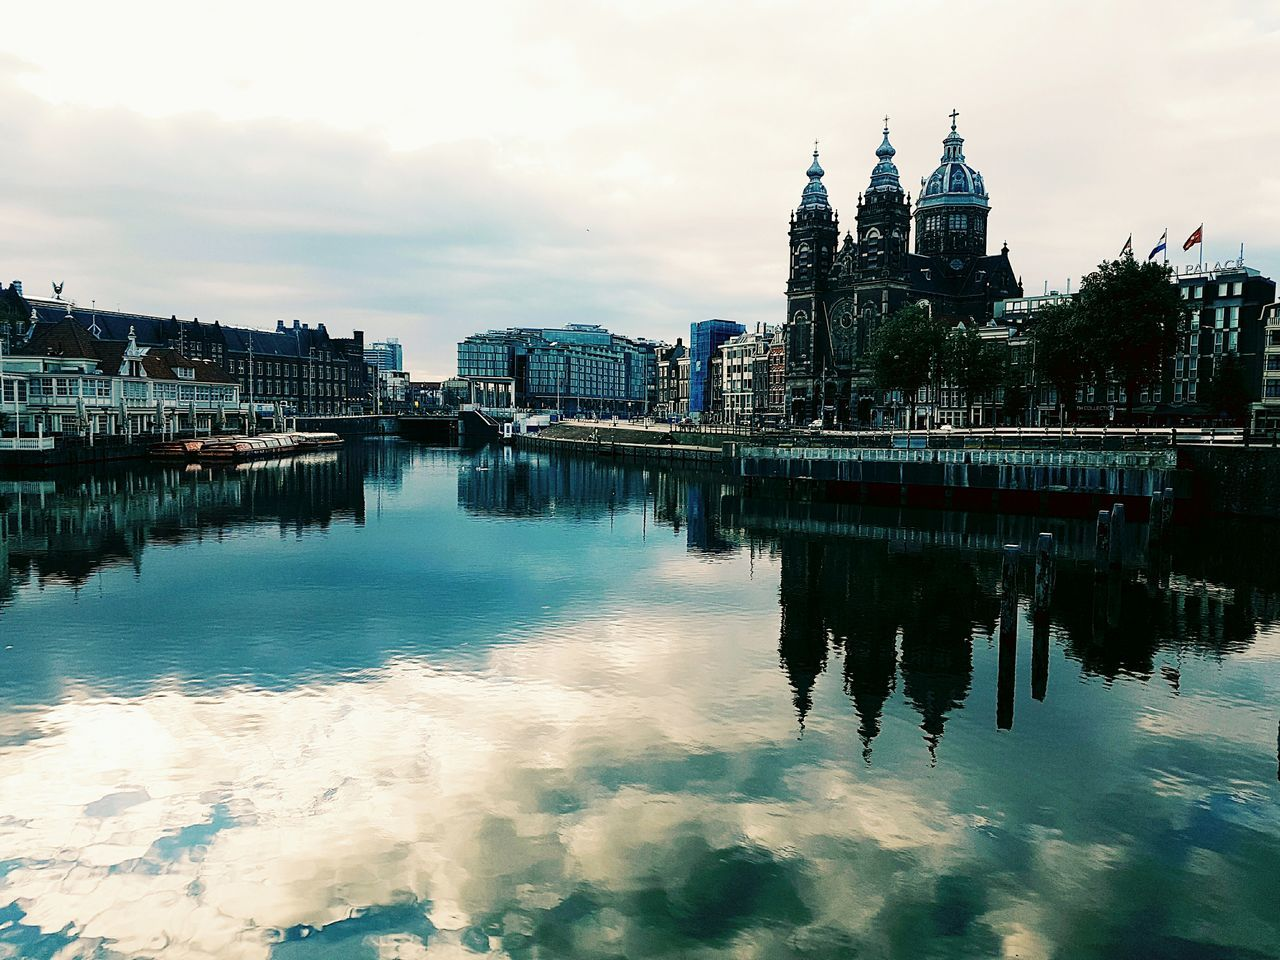 architecture, built structure, building exterior, sky, water, cloud - sky, reflection, outdoors, waterfront, travel destinations, place of worship, no people, day, nature, city